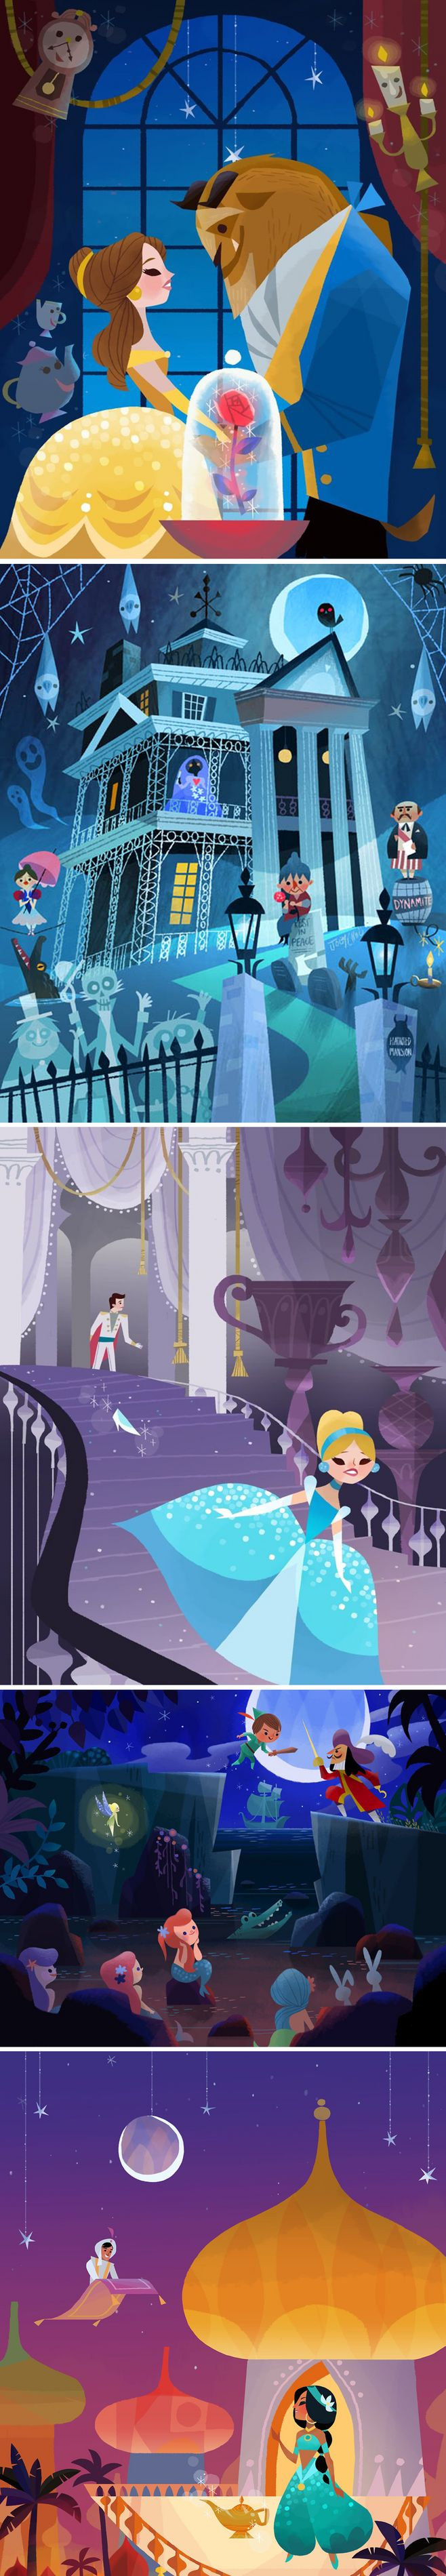 I have the Haunted Mansion picture.  Love this style.  Need to get the others!!  Disney, Mary Blair Style